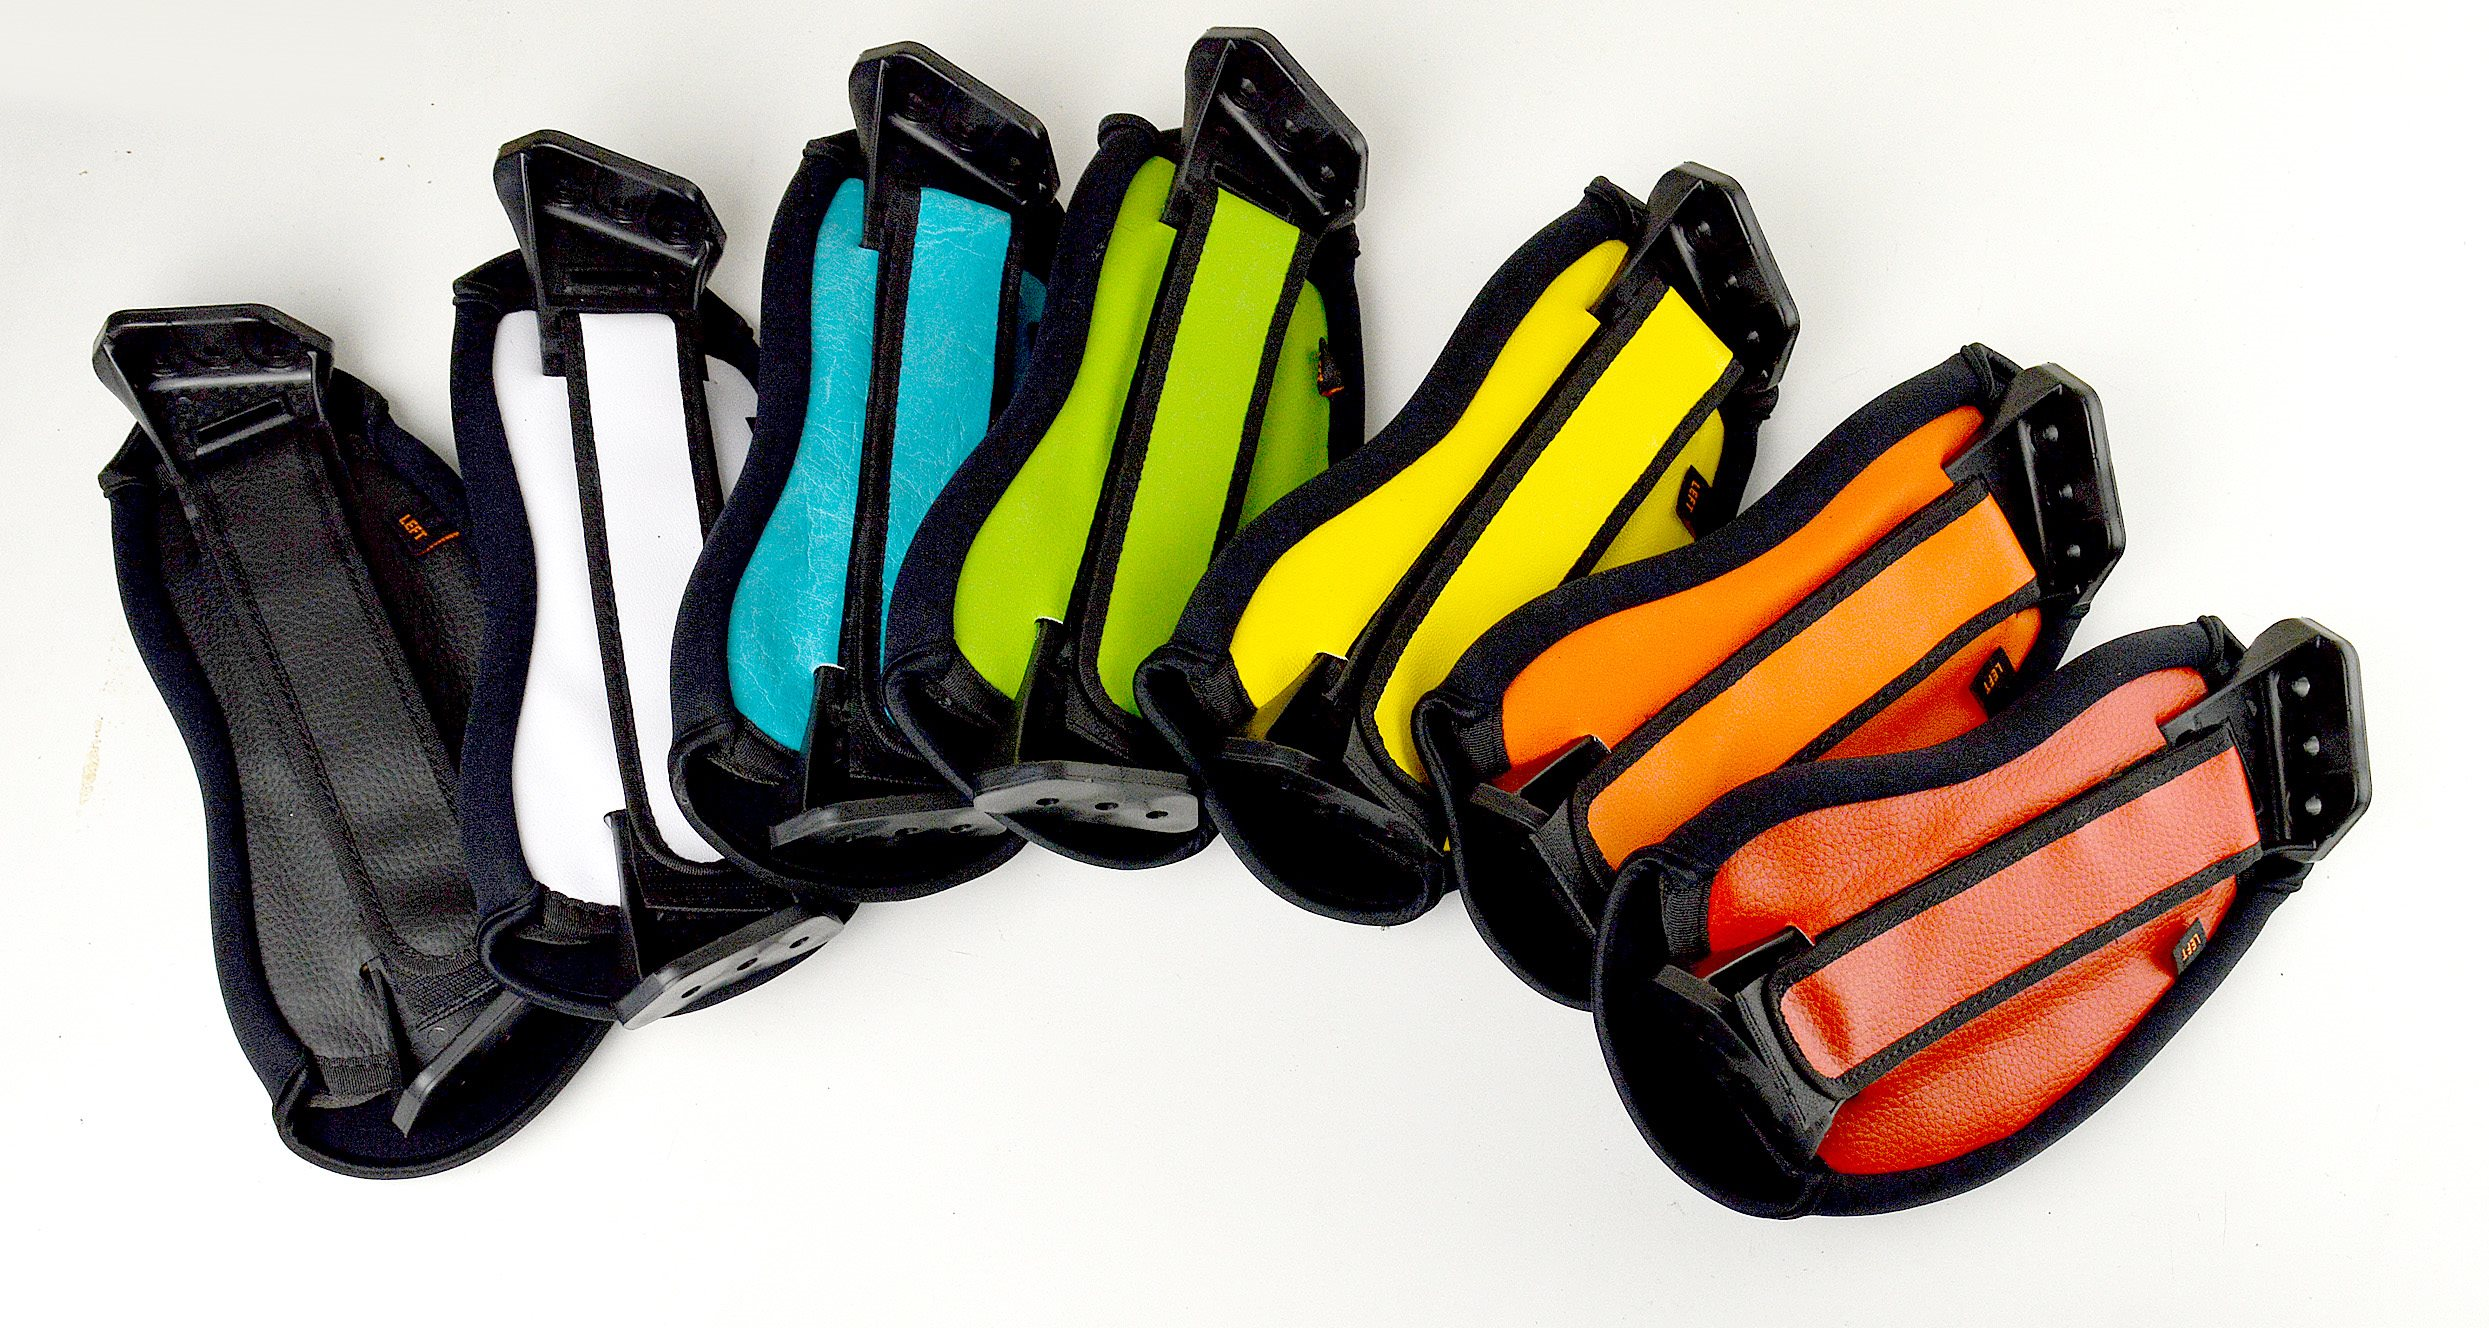 Kitemana Feather Lite Footpads